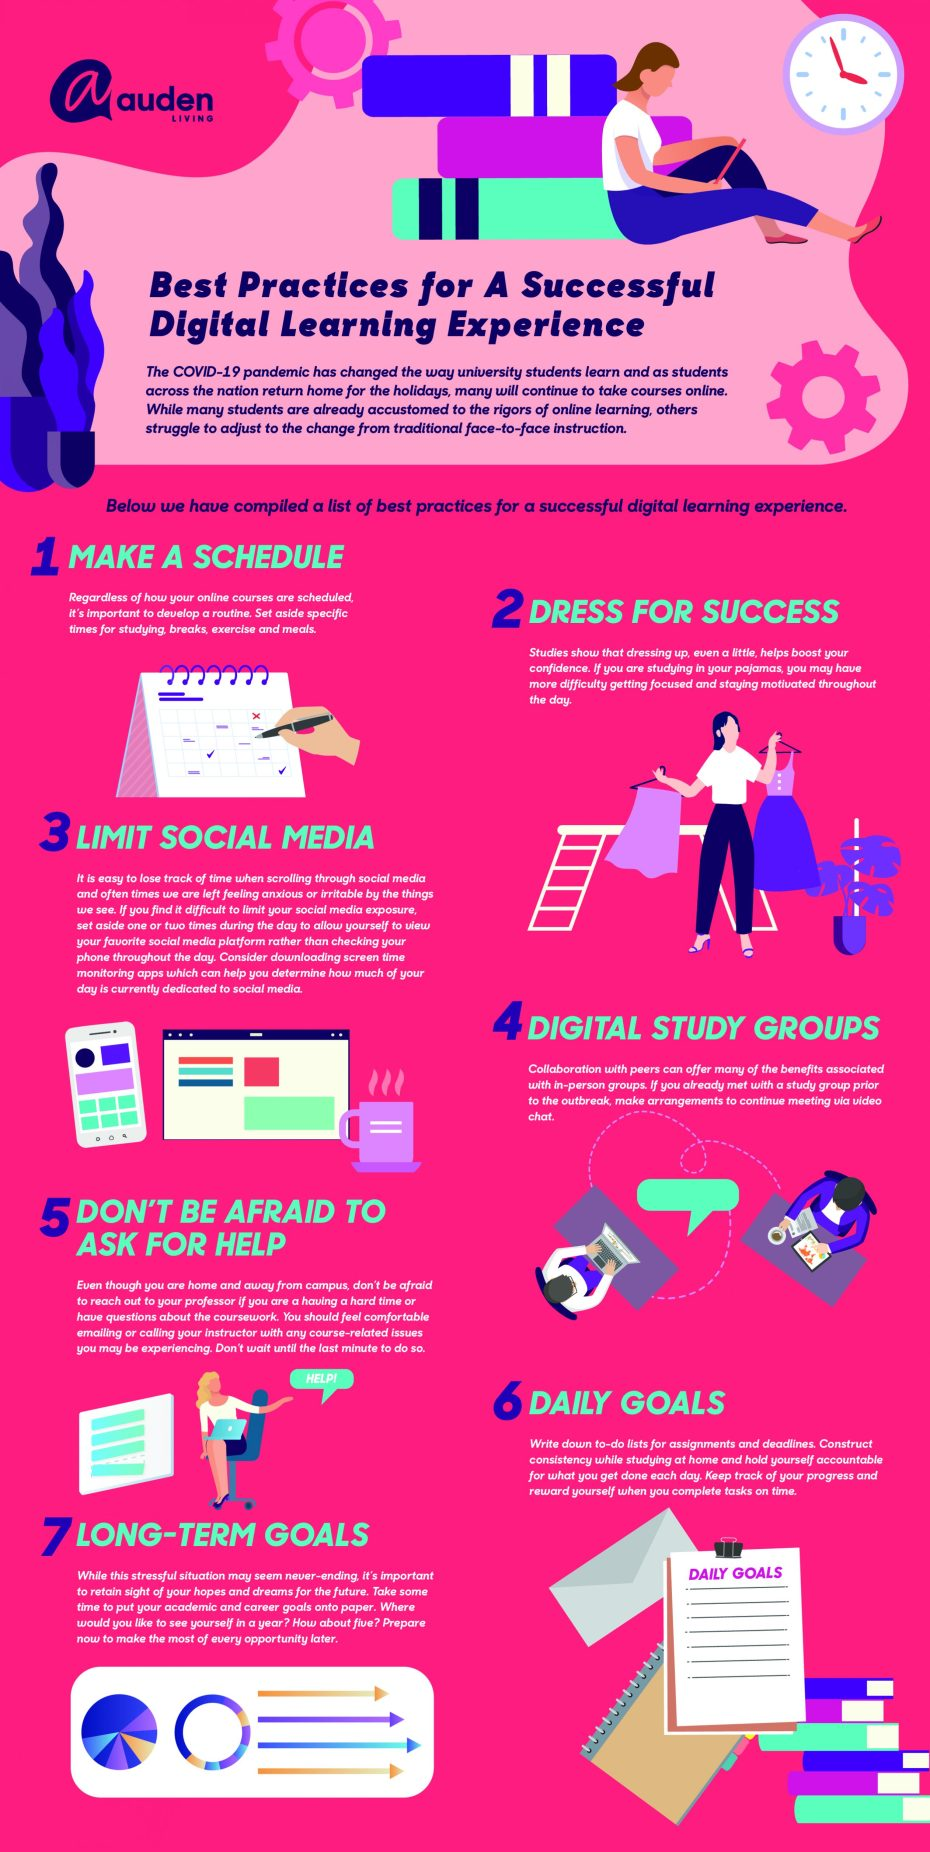 Best Practices for a Successful Digital Learning Experience